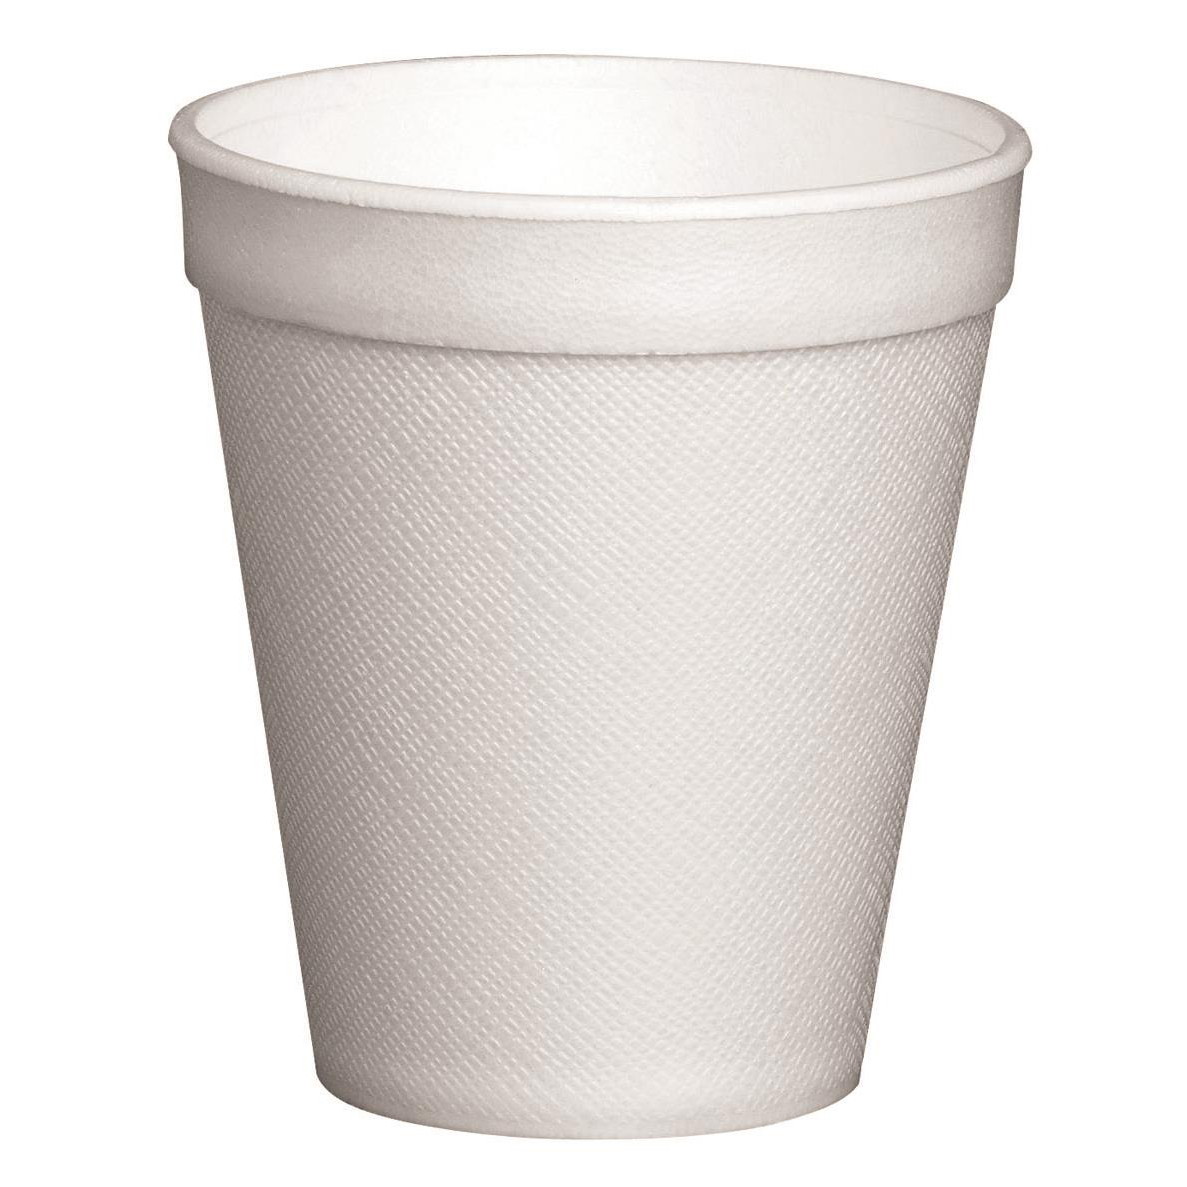 Disposable Cups & Accessories Cup Insulated Foam 10oz 296ml White Ref 10LX10 Pack 20